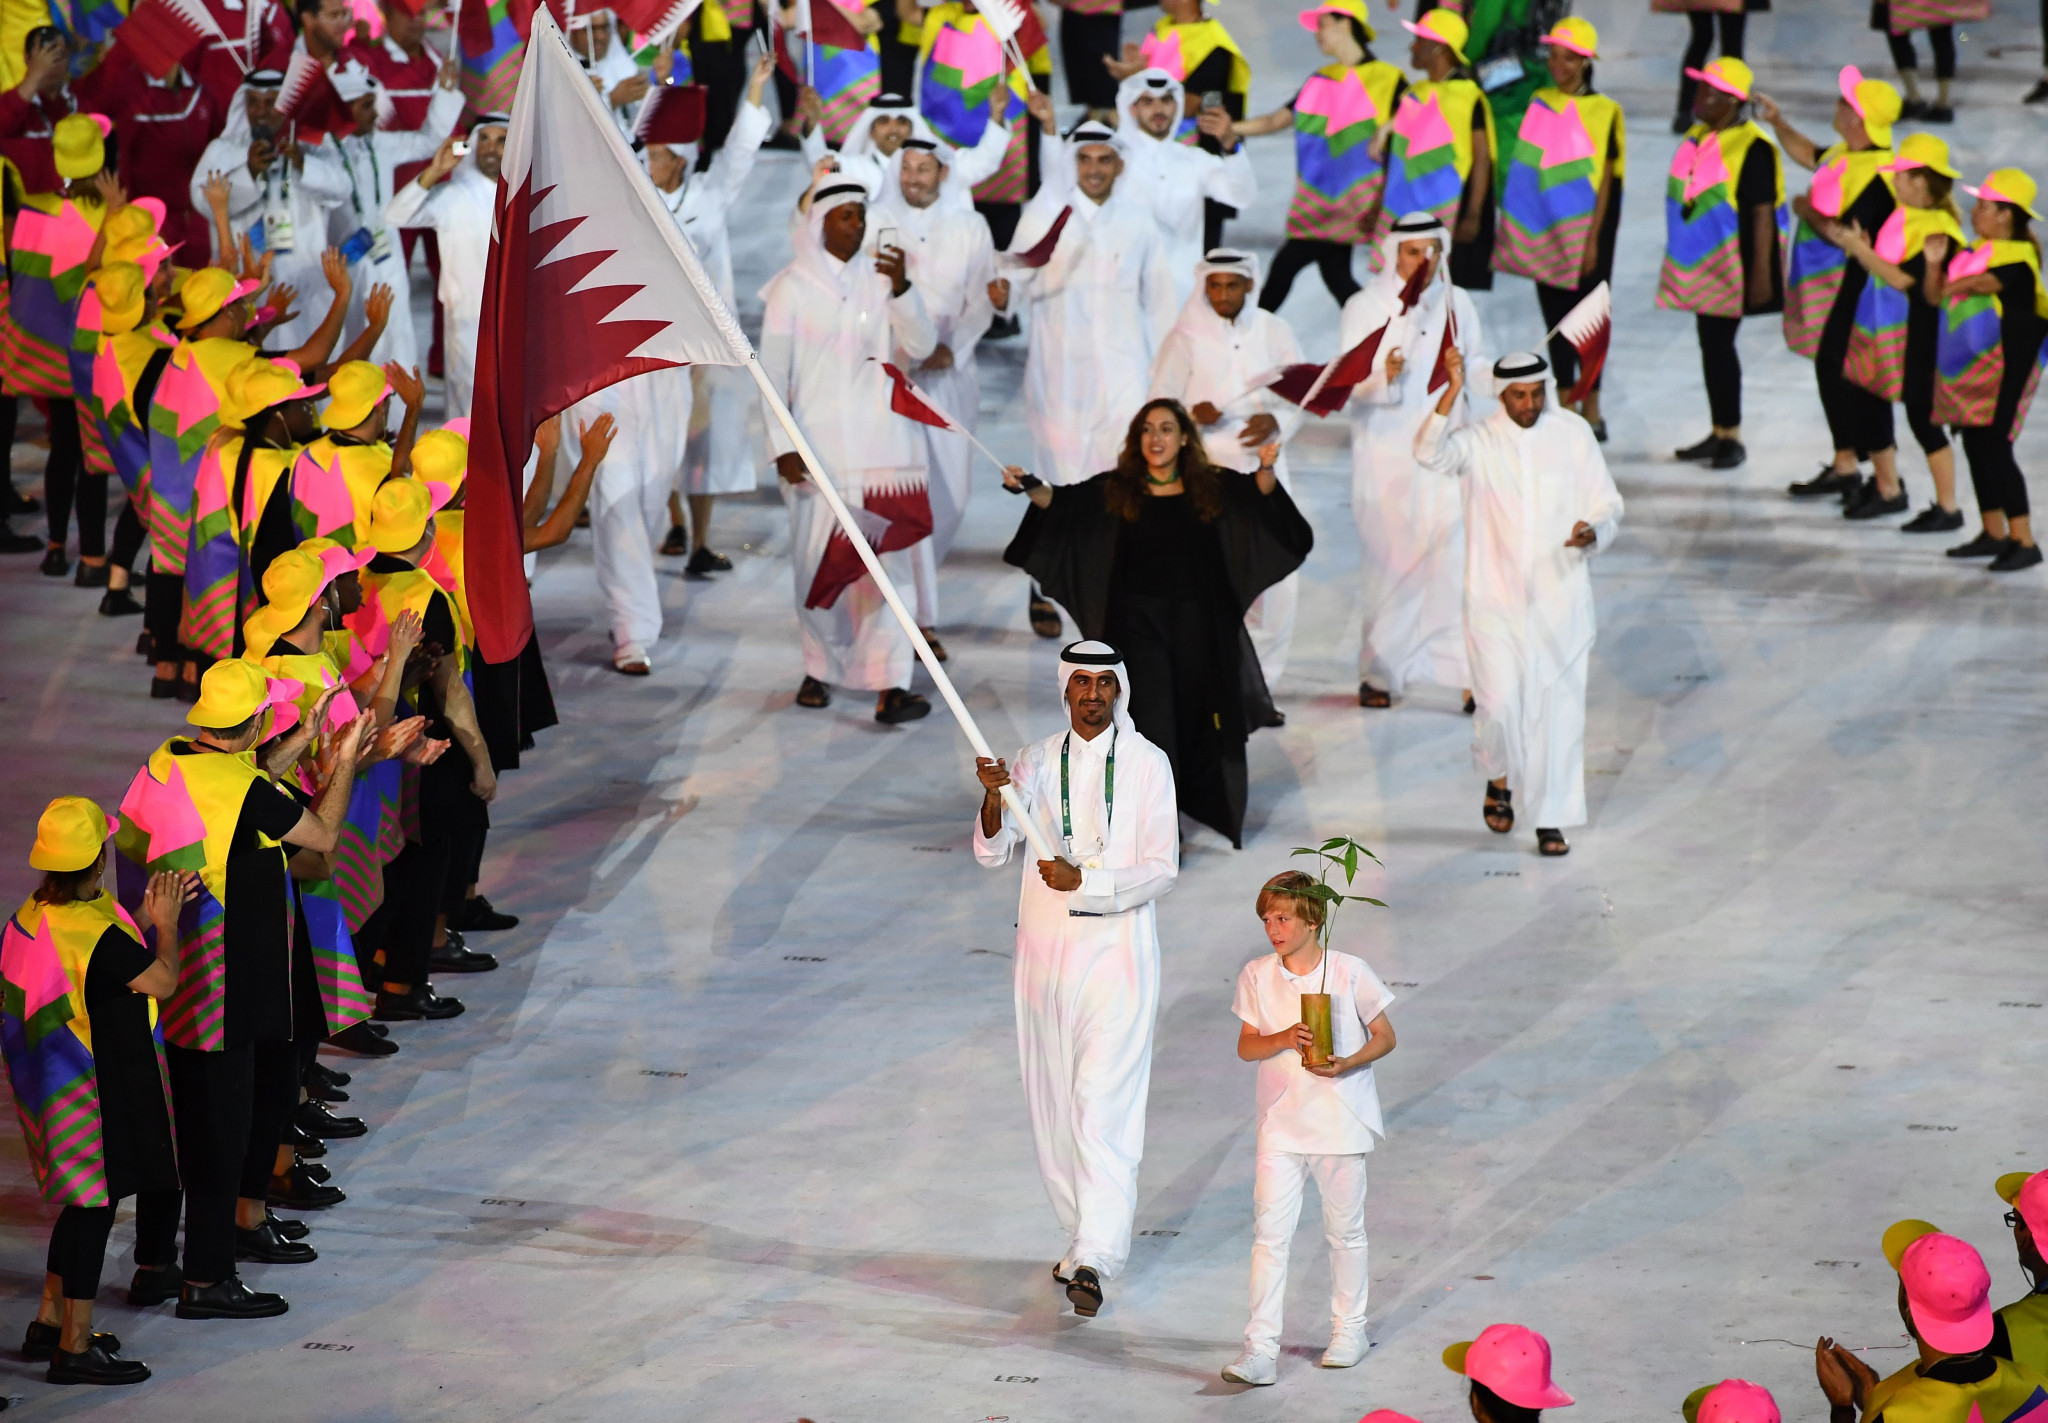 The Qatar Olympic Committee has confirmed it will remain in dialogue with the IOC for the 2032 Olympics ©Getty Images